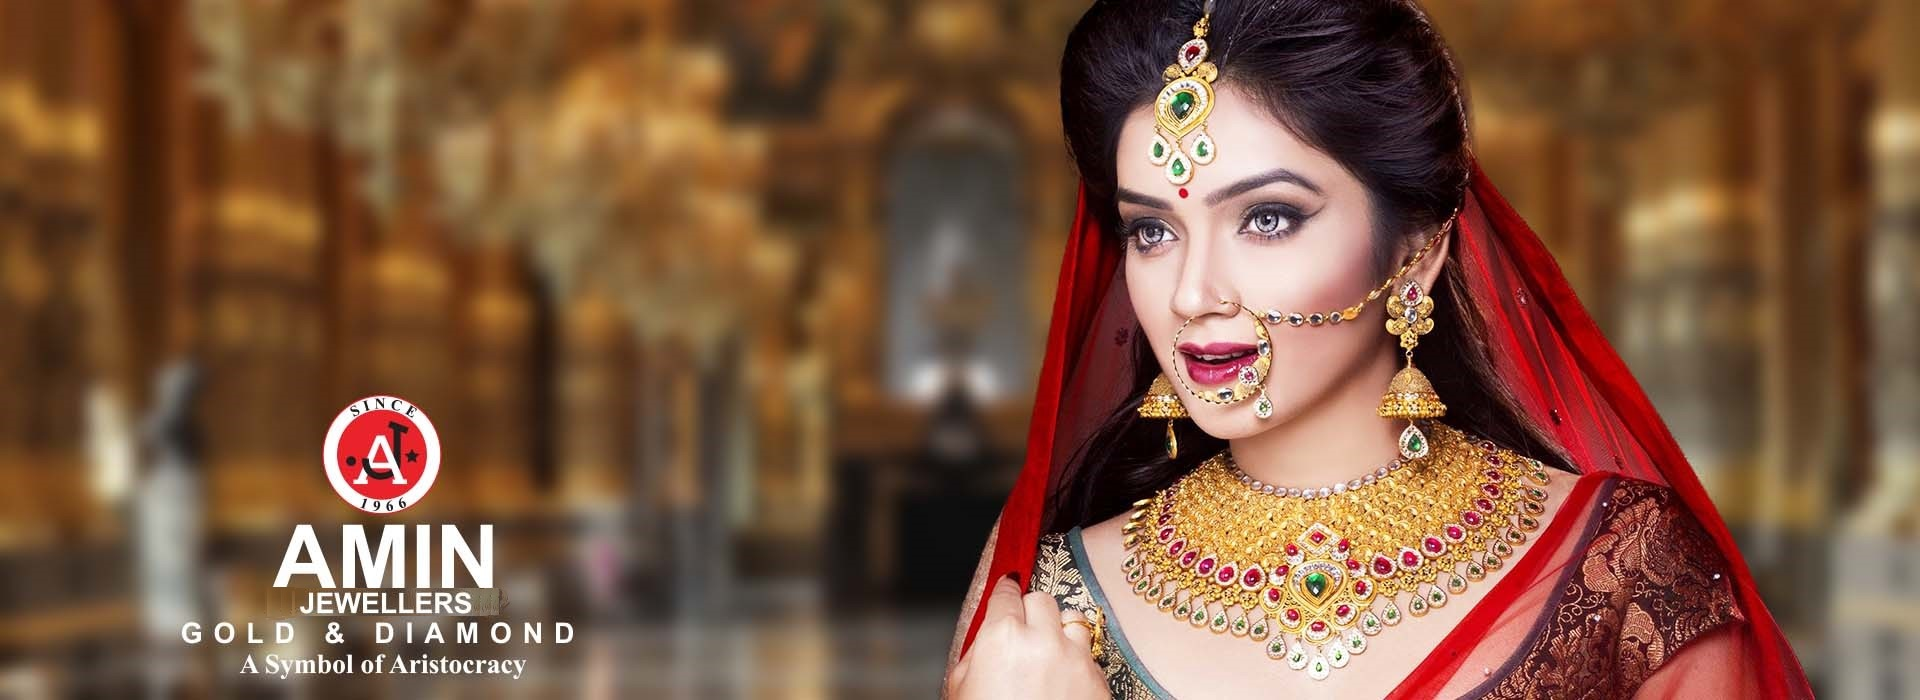 Amin Jewellers Ltd. | Gold & Diamond